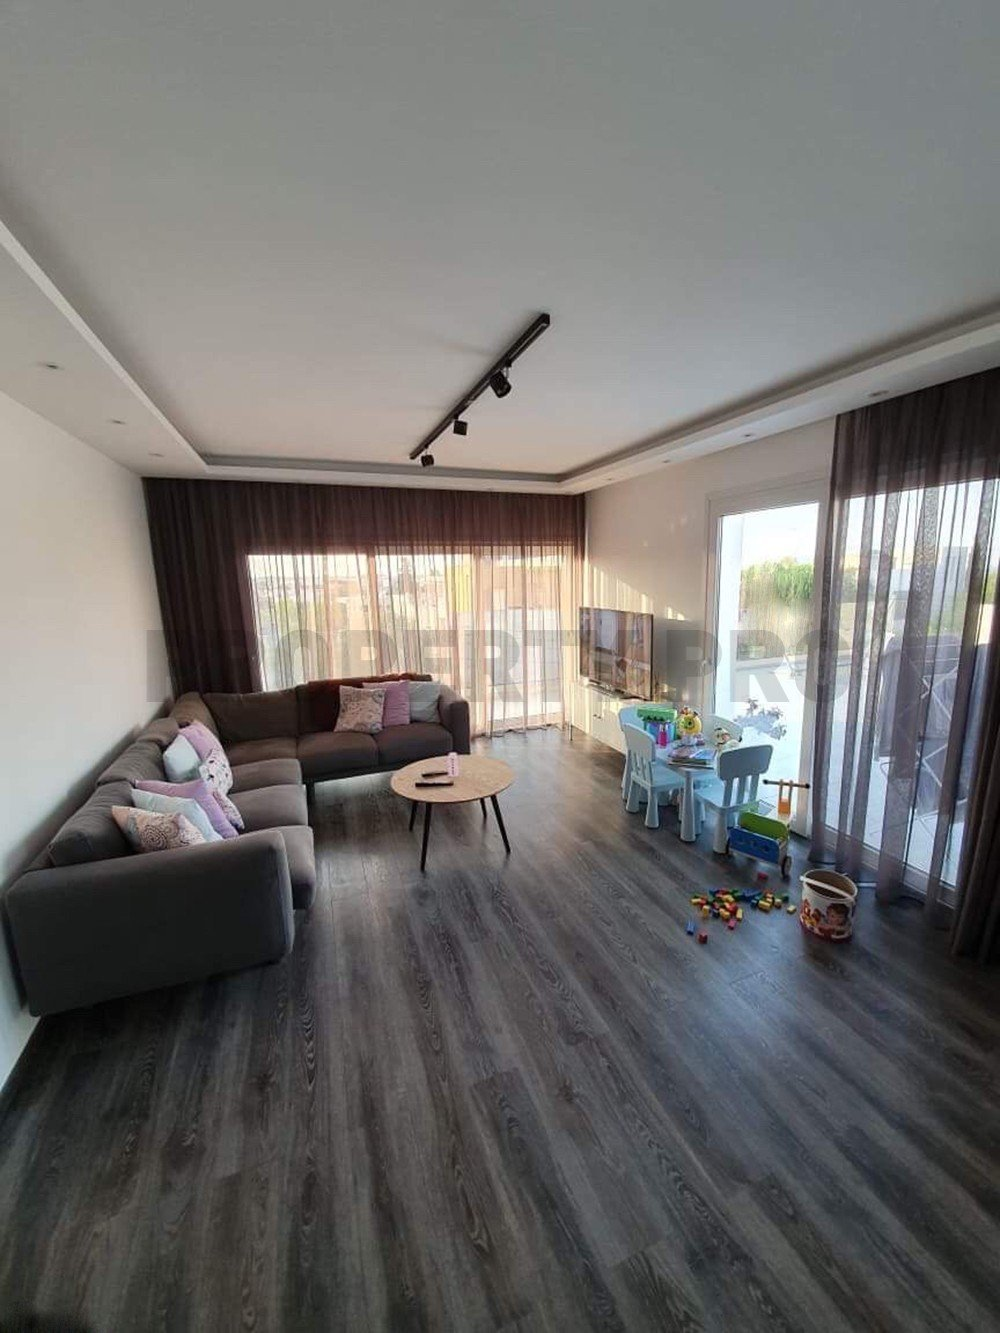 For Sale, Luxury and Contemporary Two-Bedroom Apartment in Strovolos